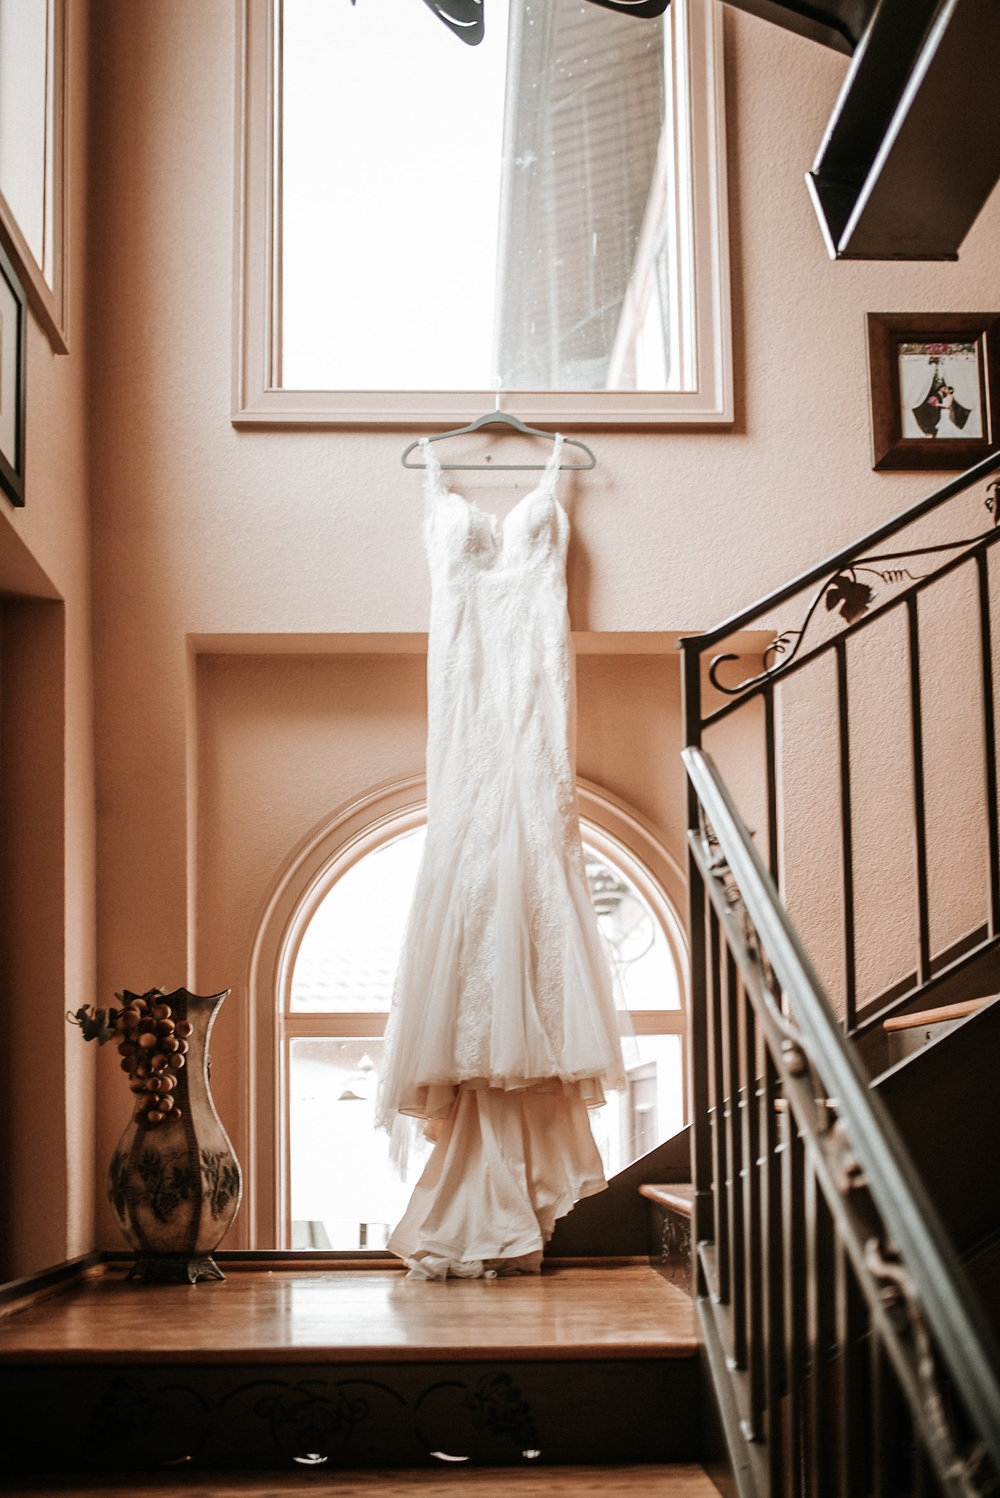 Bride's dress hanging on window